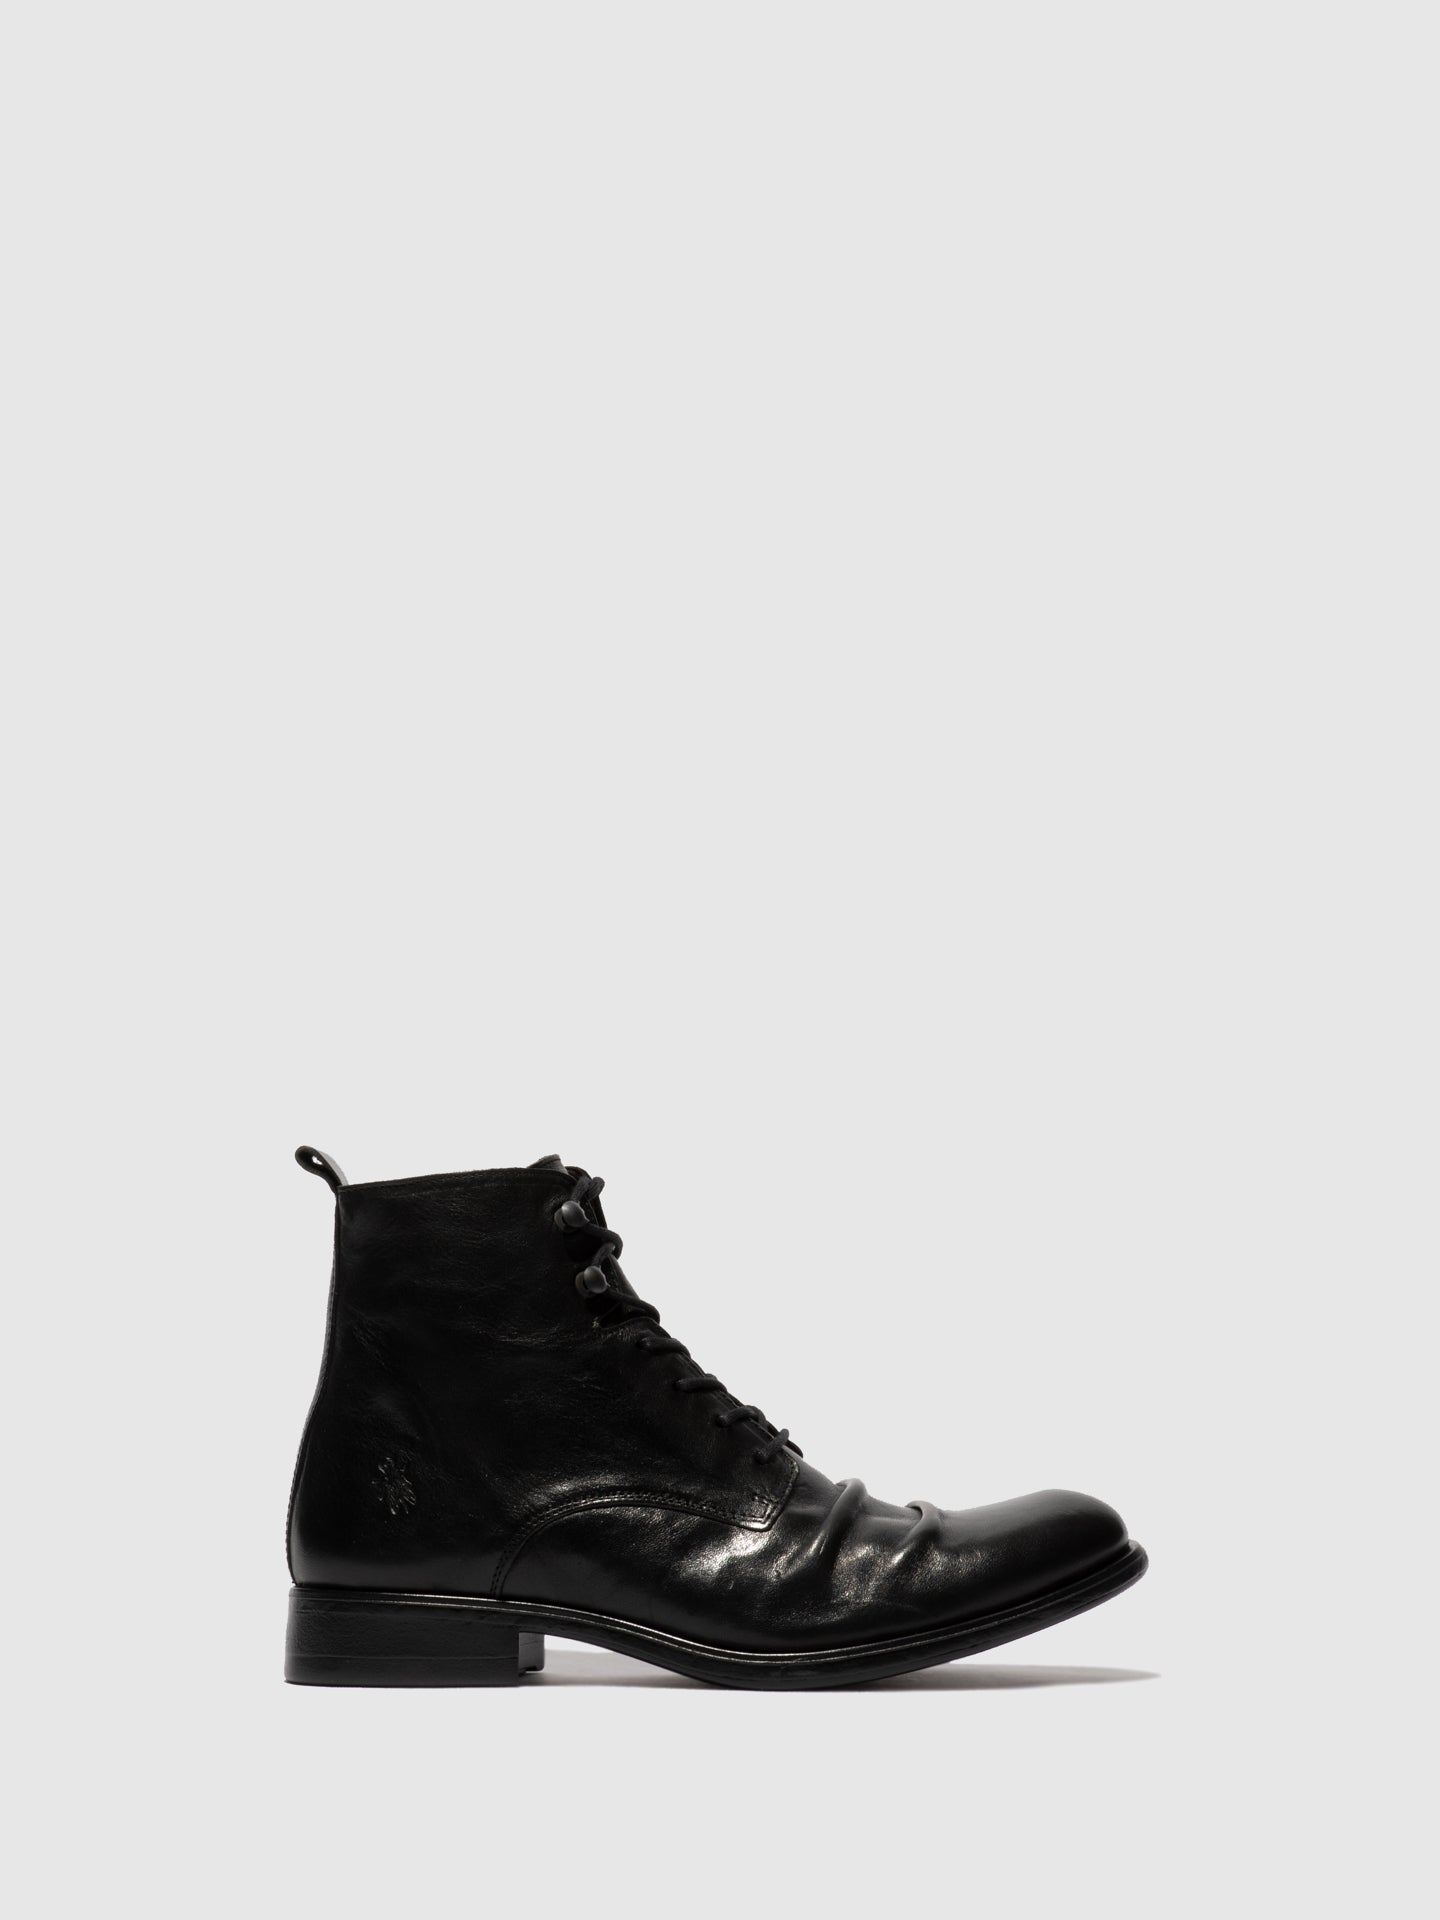 Fly London Botins com Atacadores MYKE660FLY ESTIGMA(VEGETAL) BLACK